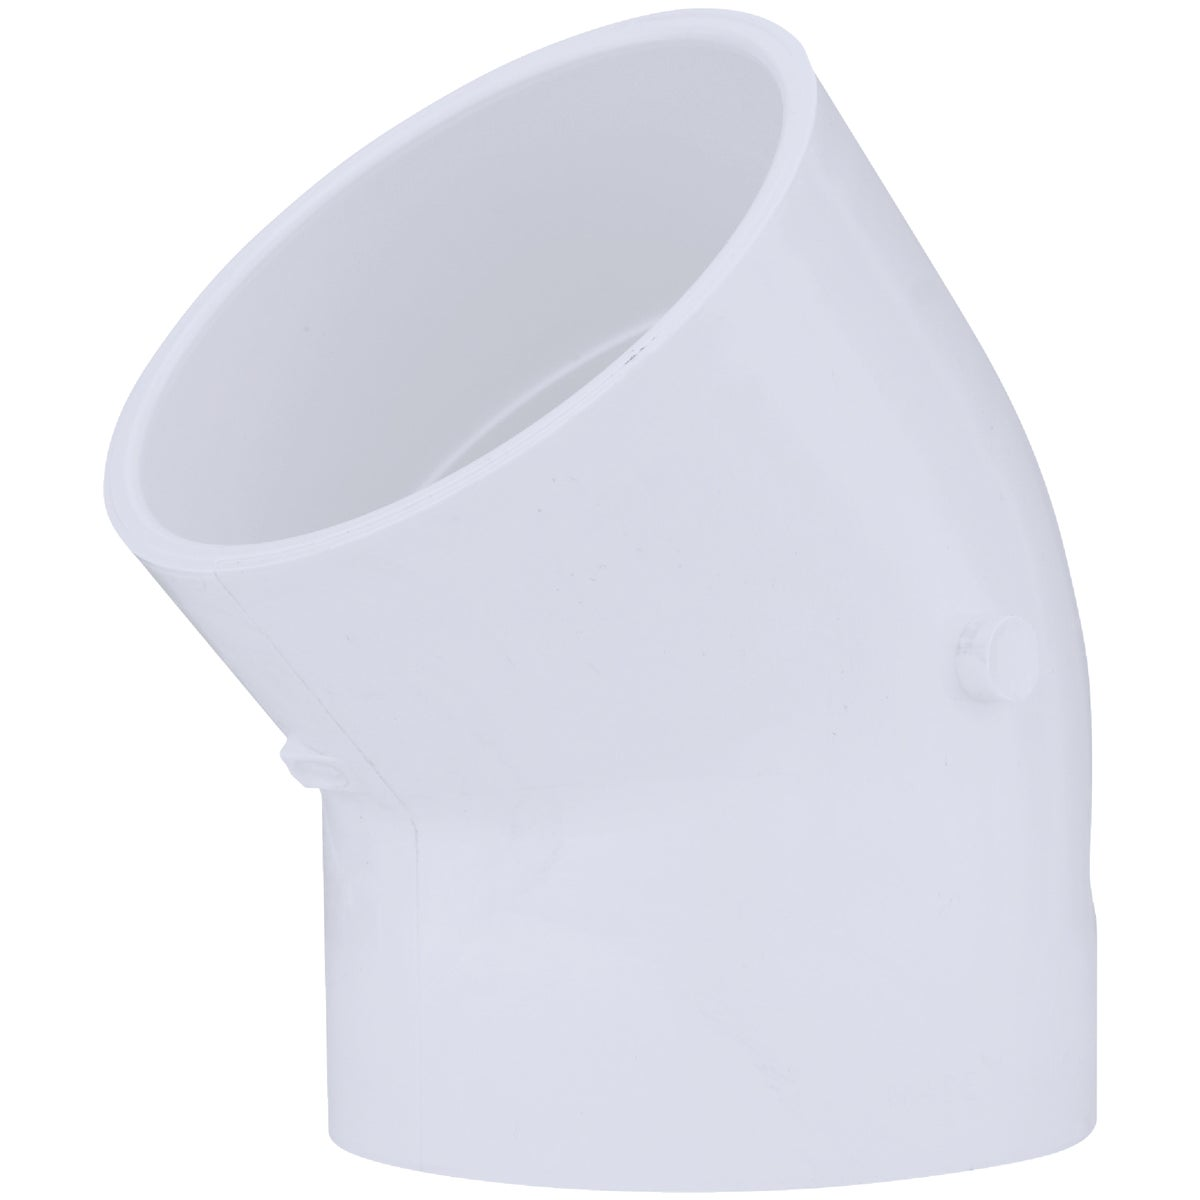 "4"" SCH40 SXS 45D ELBOW - 30640 by Genova Inc"